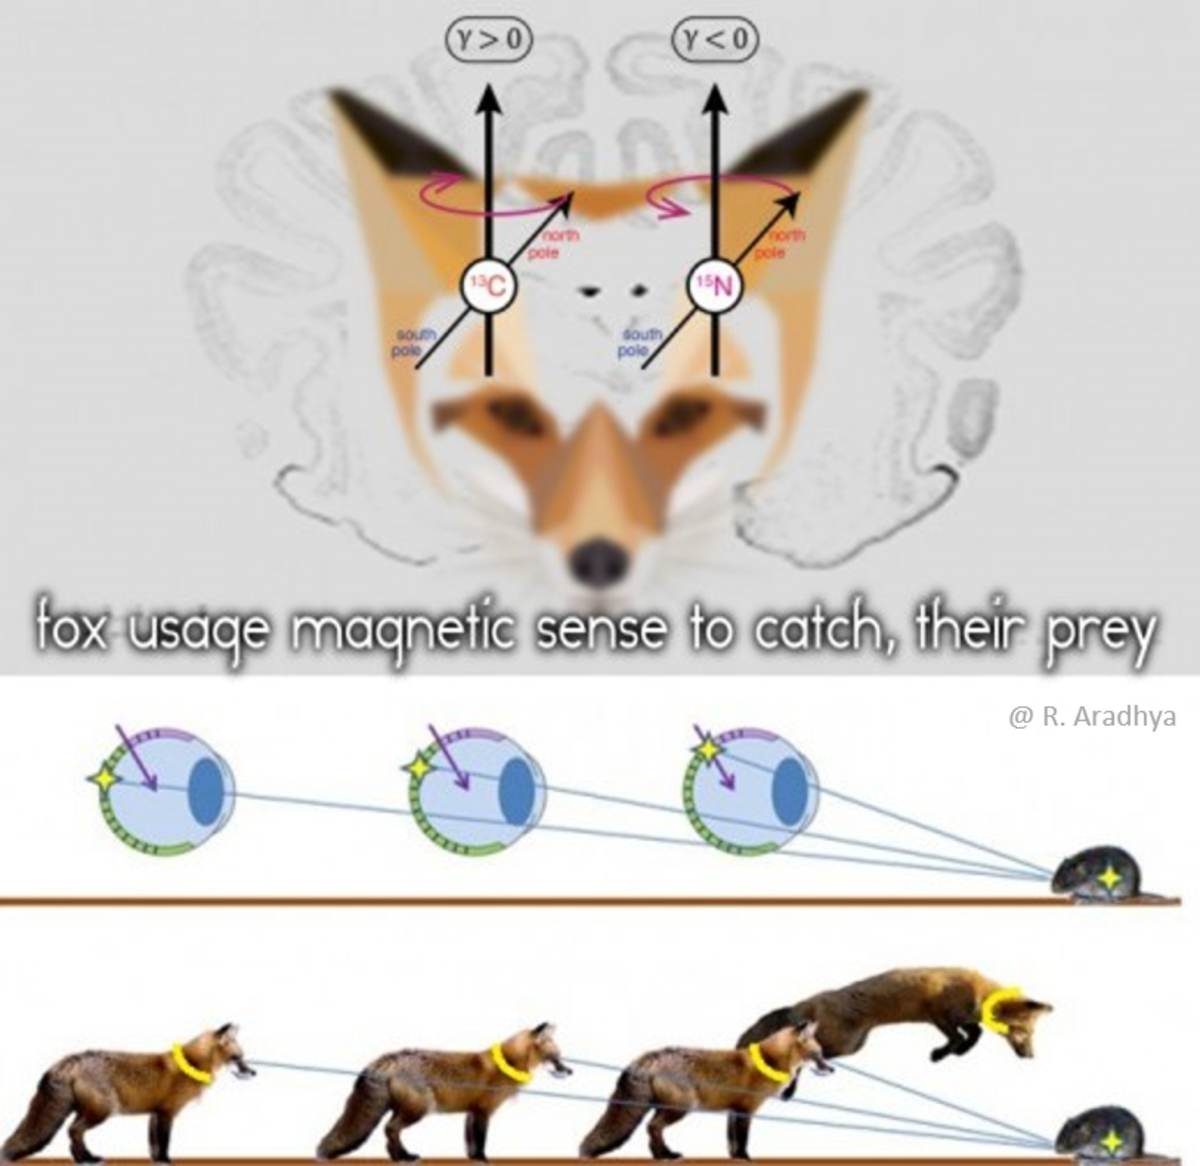 The Fox Magnetic Sense to Hunt